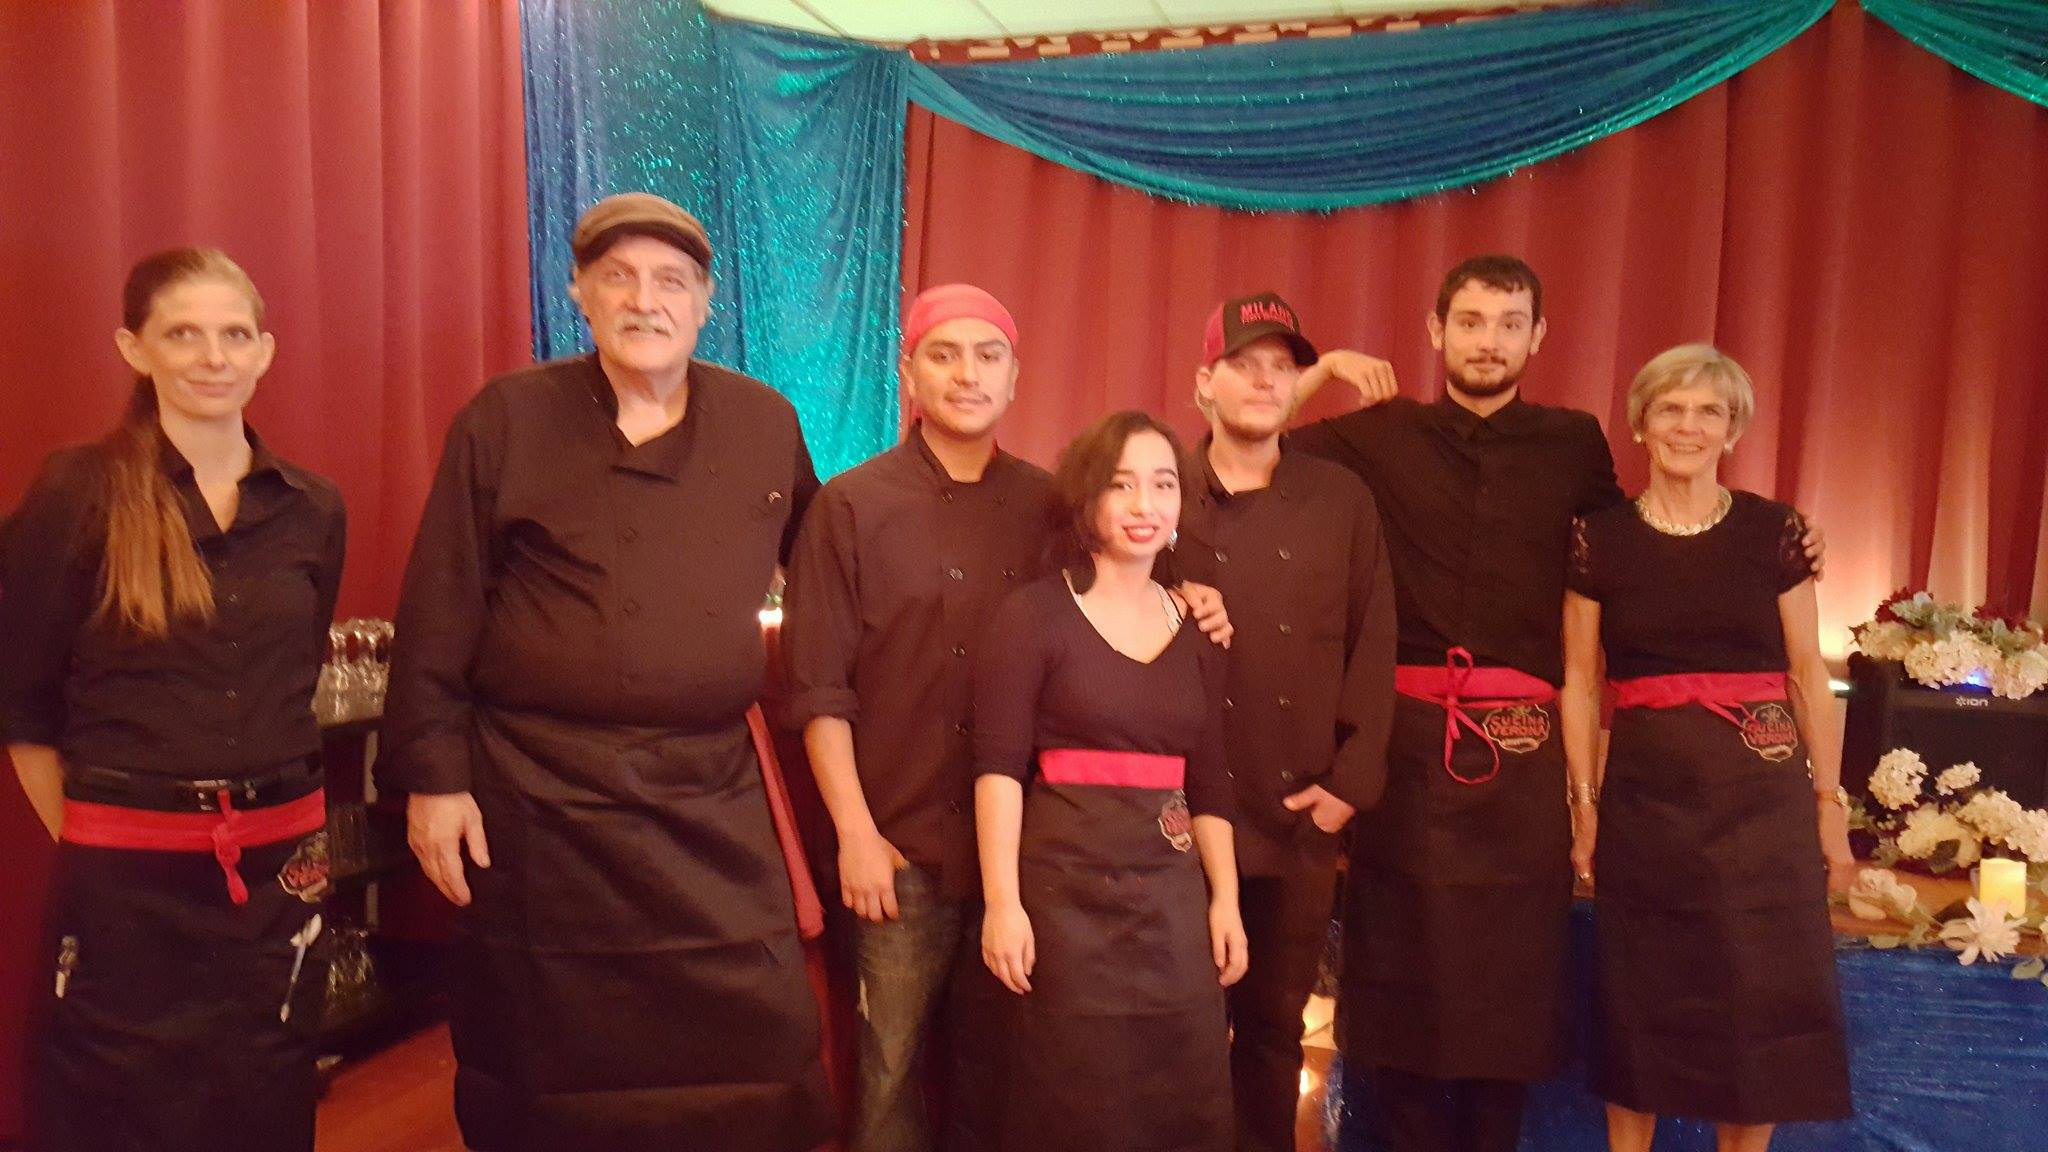 - Cucina Verona offers full service catering for Weddings, Holiday Parties, or any other special occasion. With our off site partners we can accommodate all special events, large or small. Join us for your Holiday Party,Corporate Retreat any other special occasion. We offer full concierge services for activities, entertainment, accommodations, and of course the finest catering services on the Mendocino Coast.